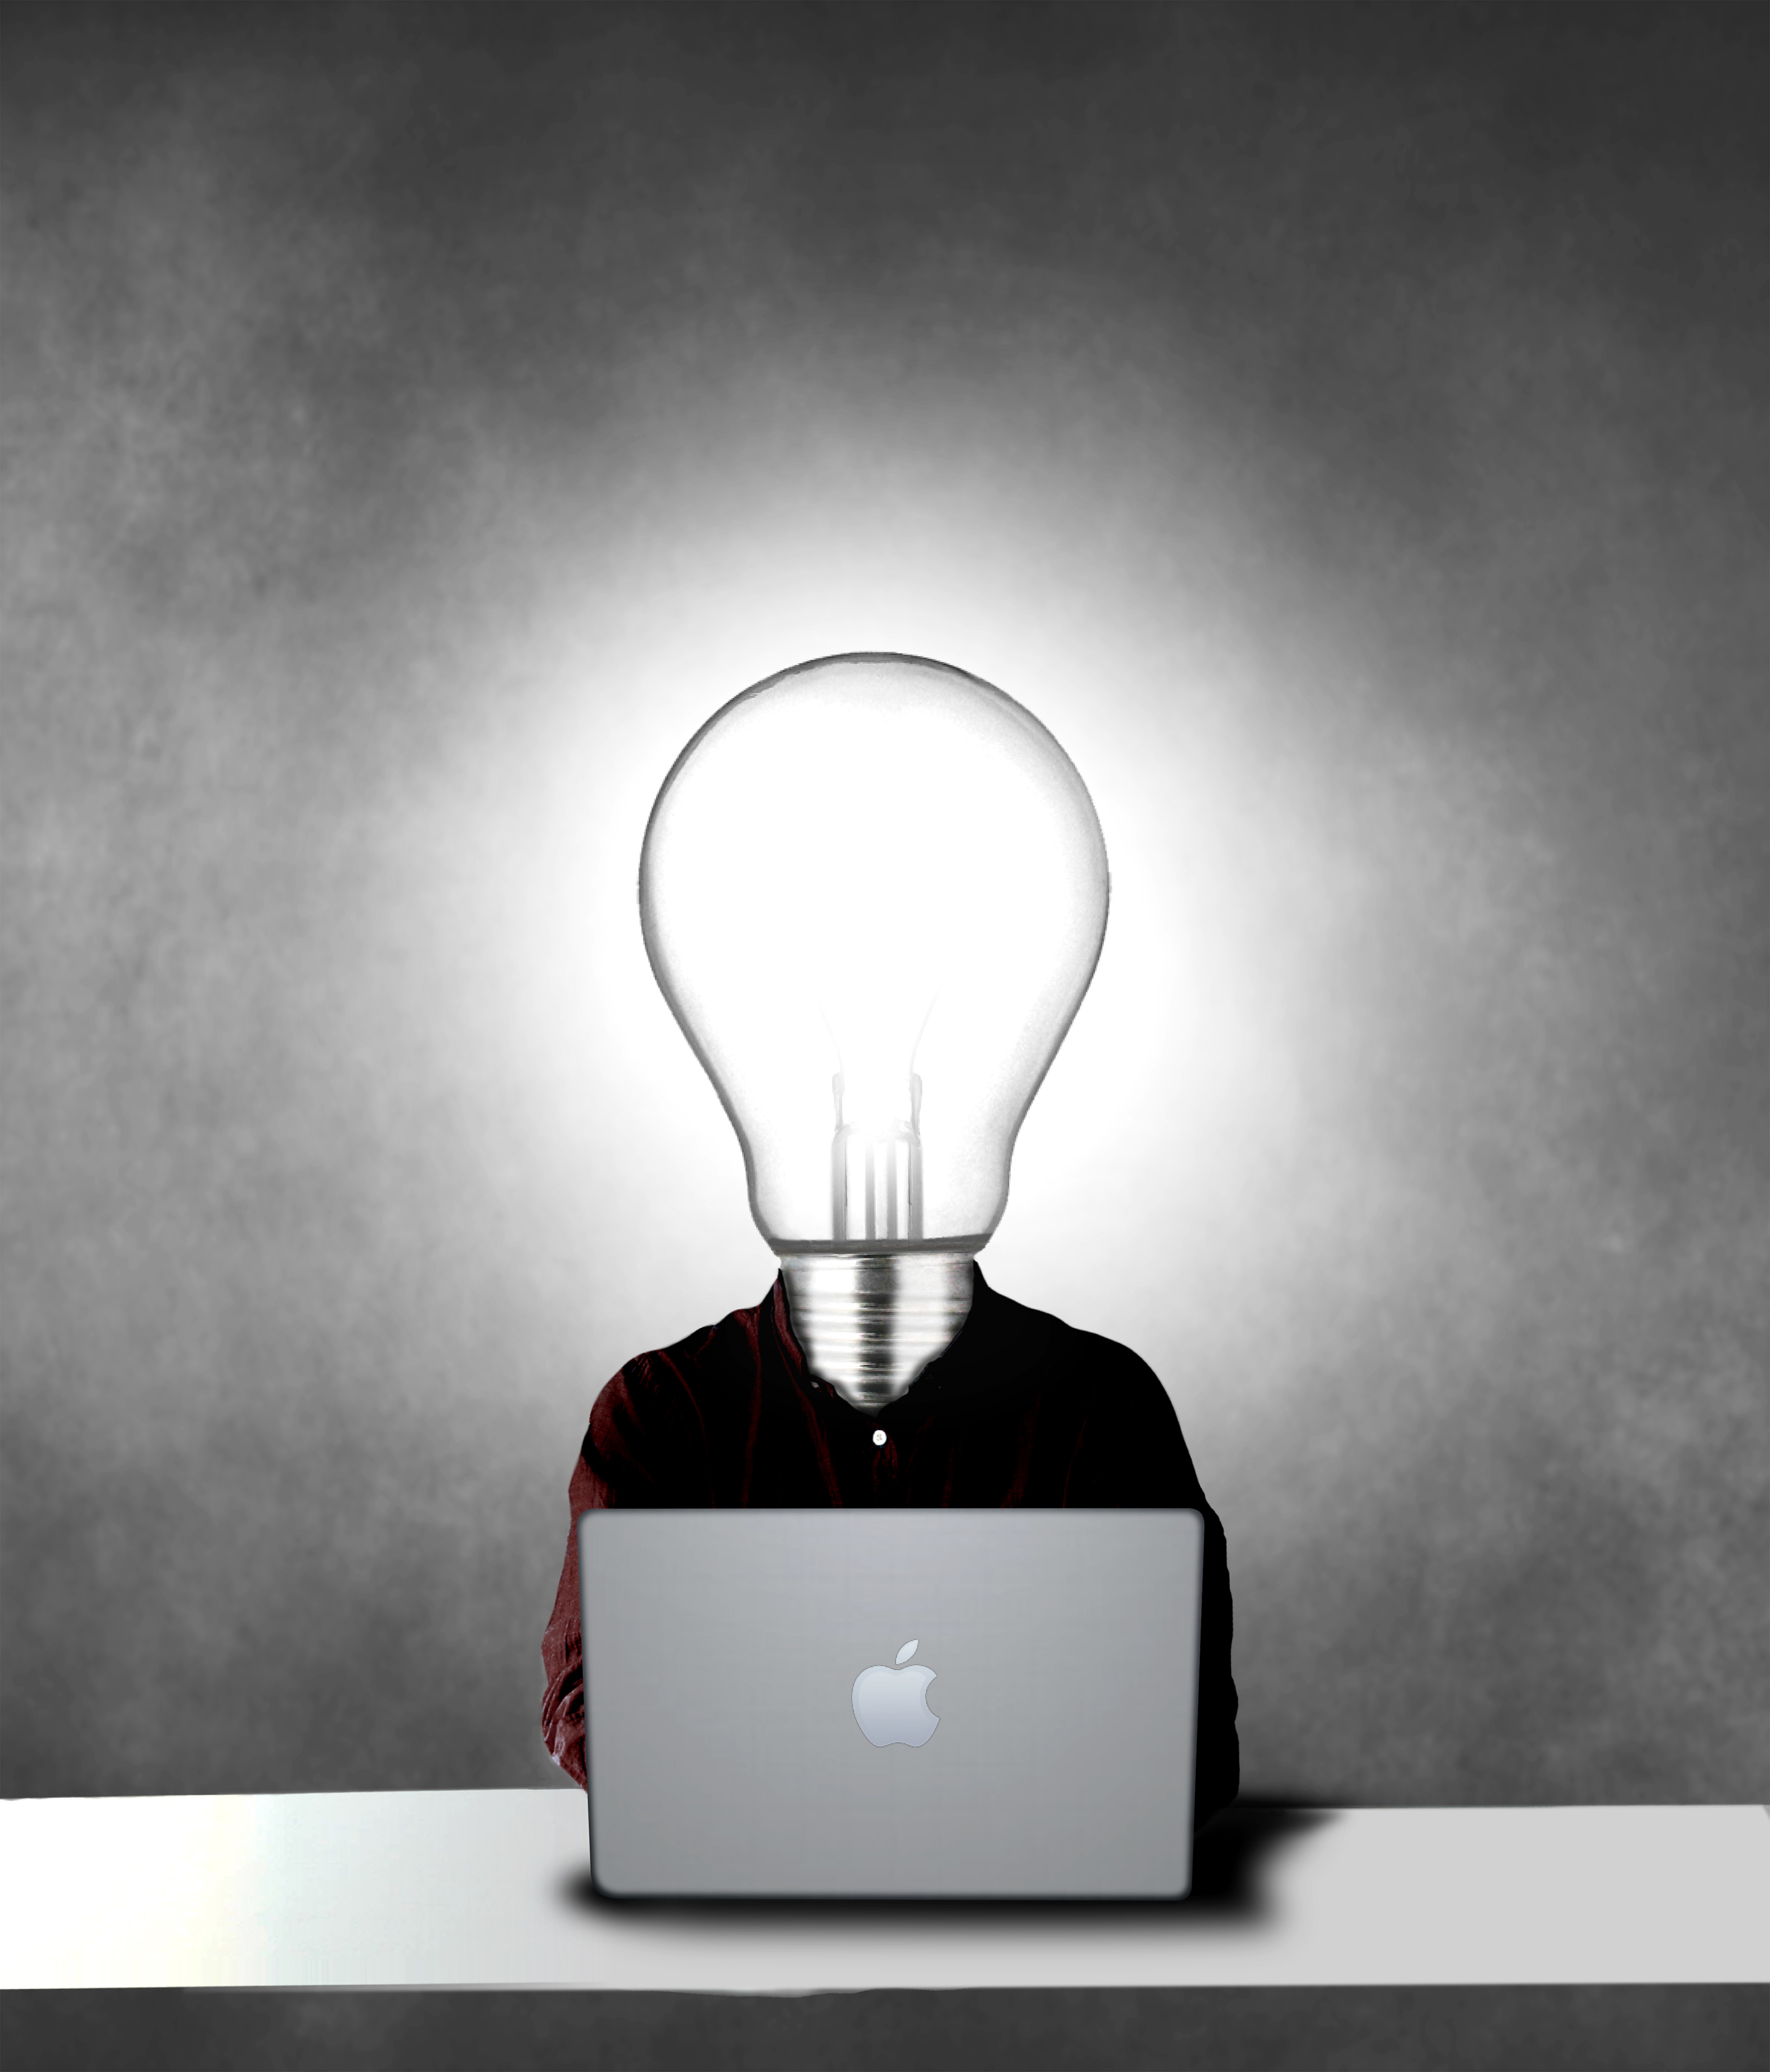 Lightbulb headed man being creative, 30s, Marketing, Person, People, HQ Photo